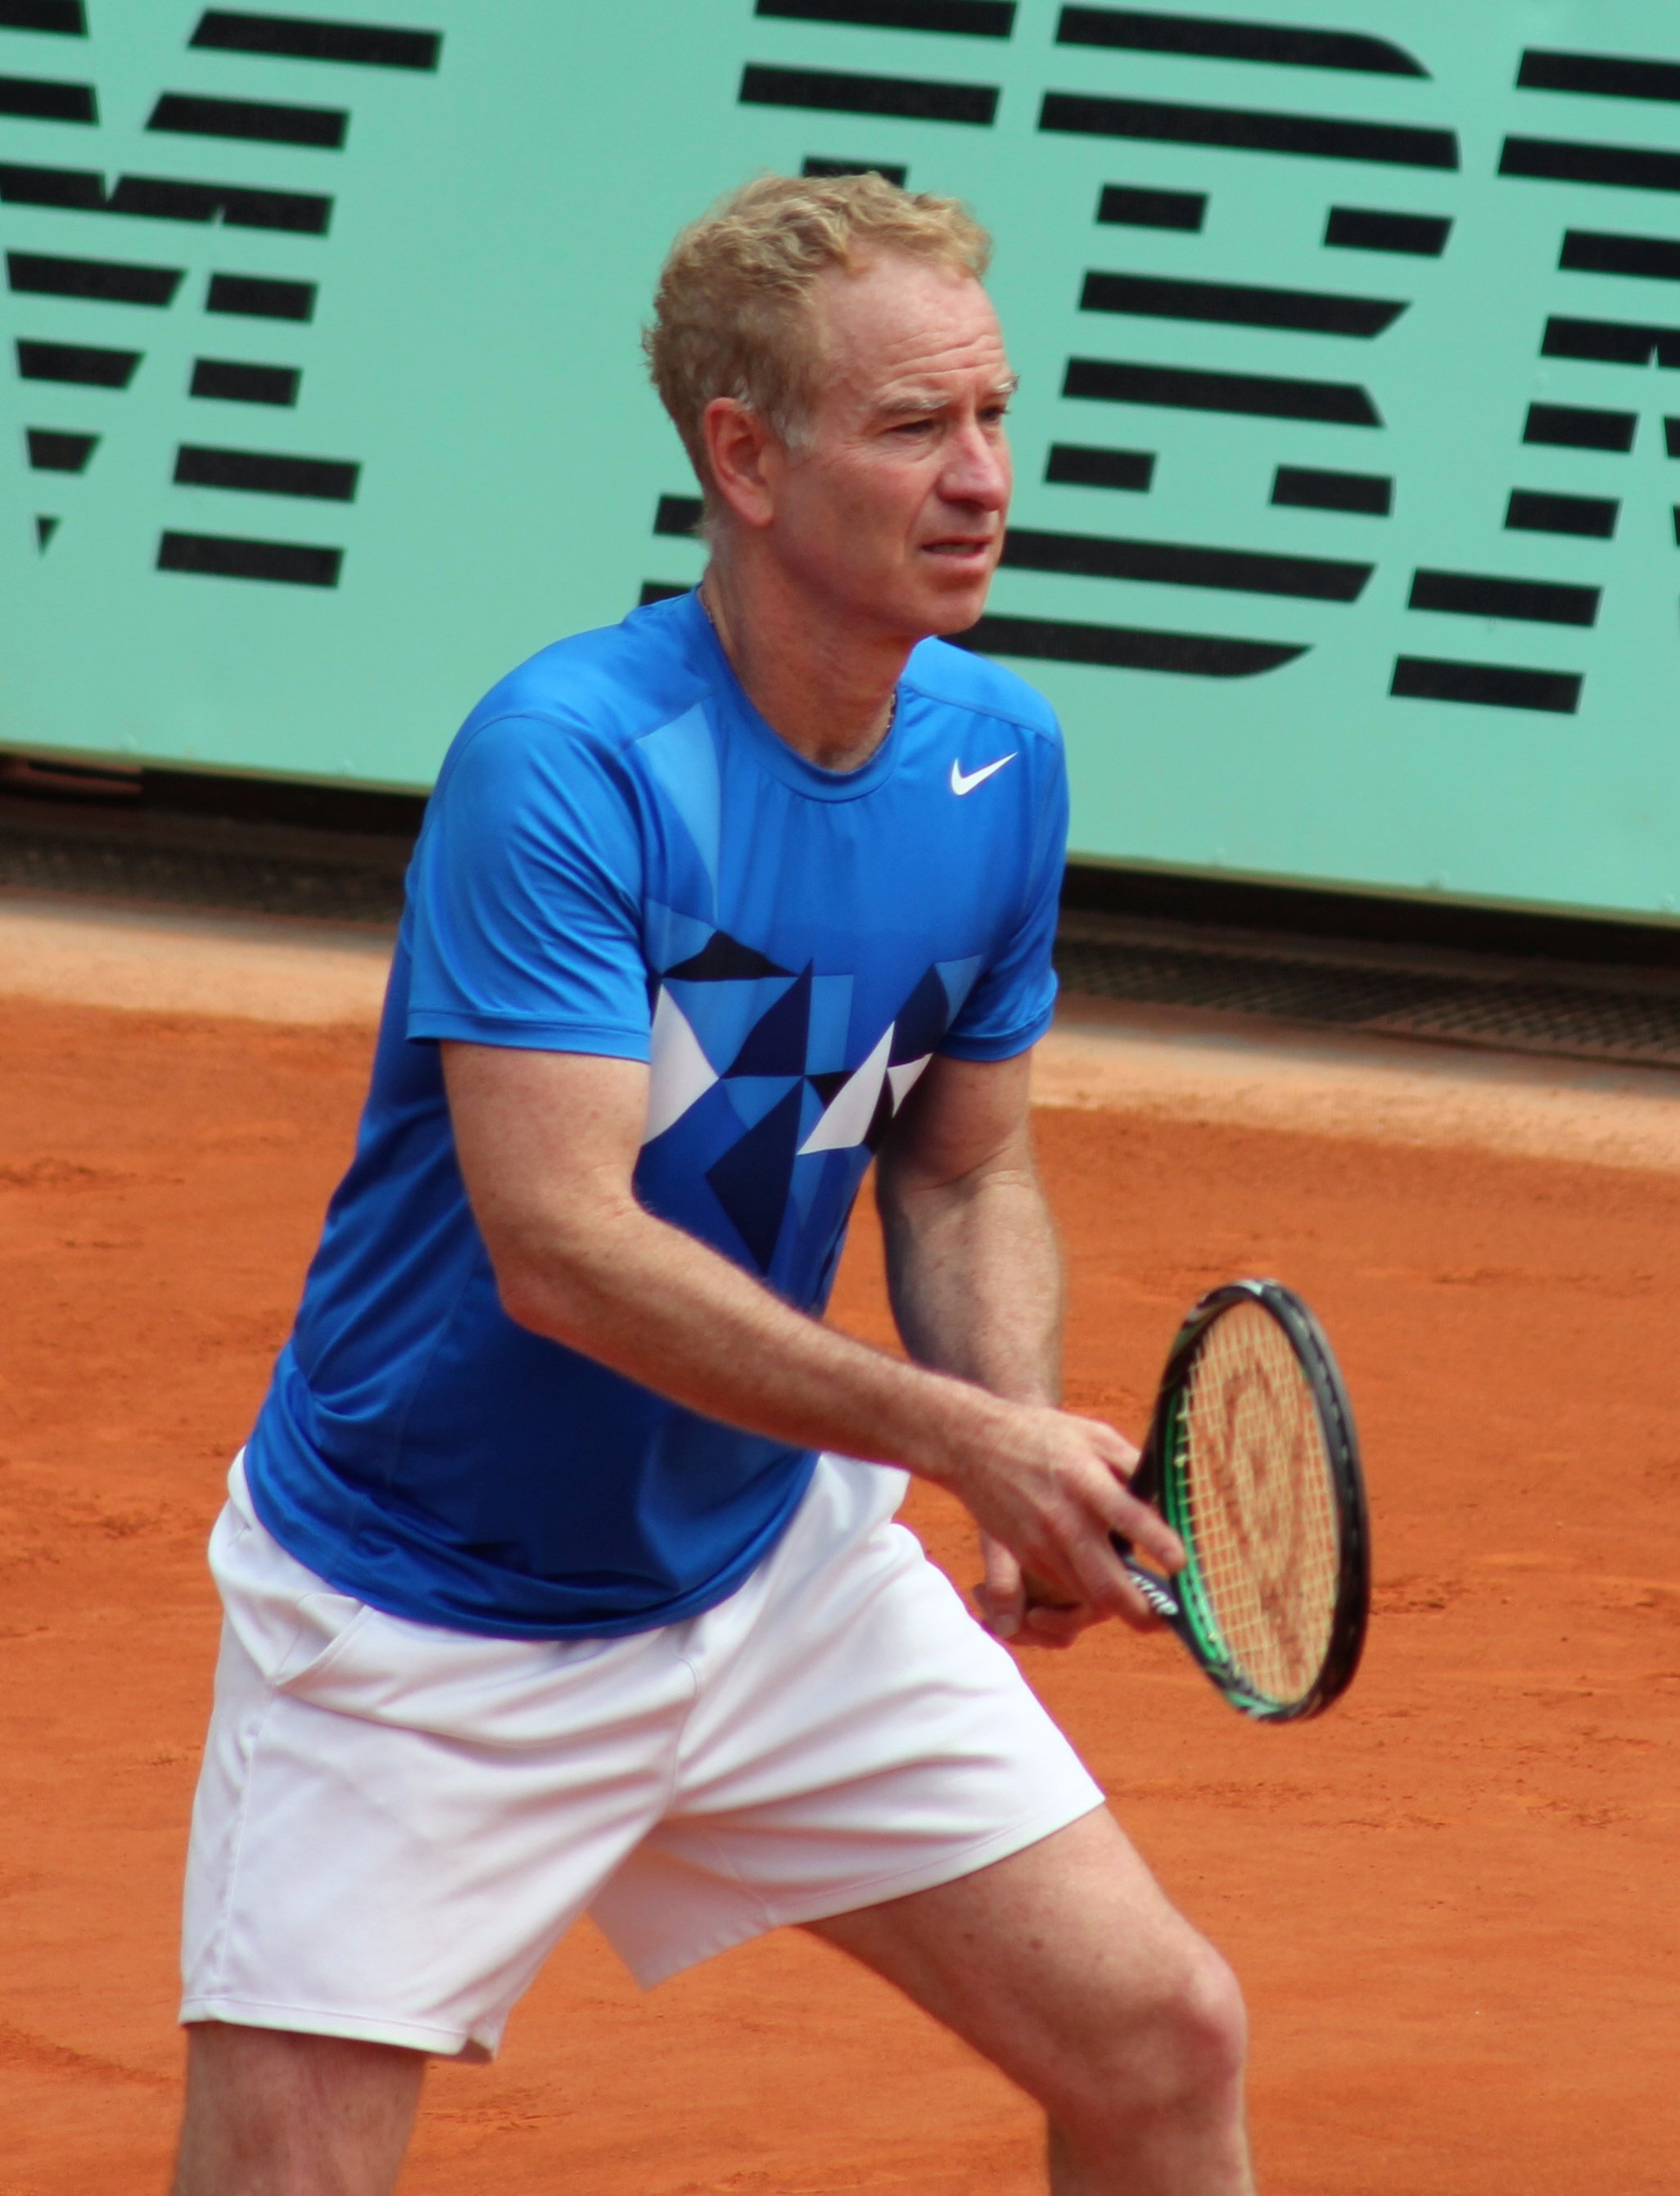 John McEnroe at the 2012 French Open – Legends Over 45 Doubles | Photo By Pruneau - Own work, CC BY-SA 3.0, Wikimedia Commons Images